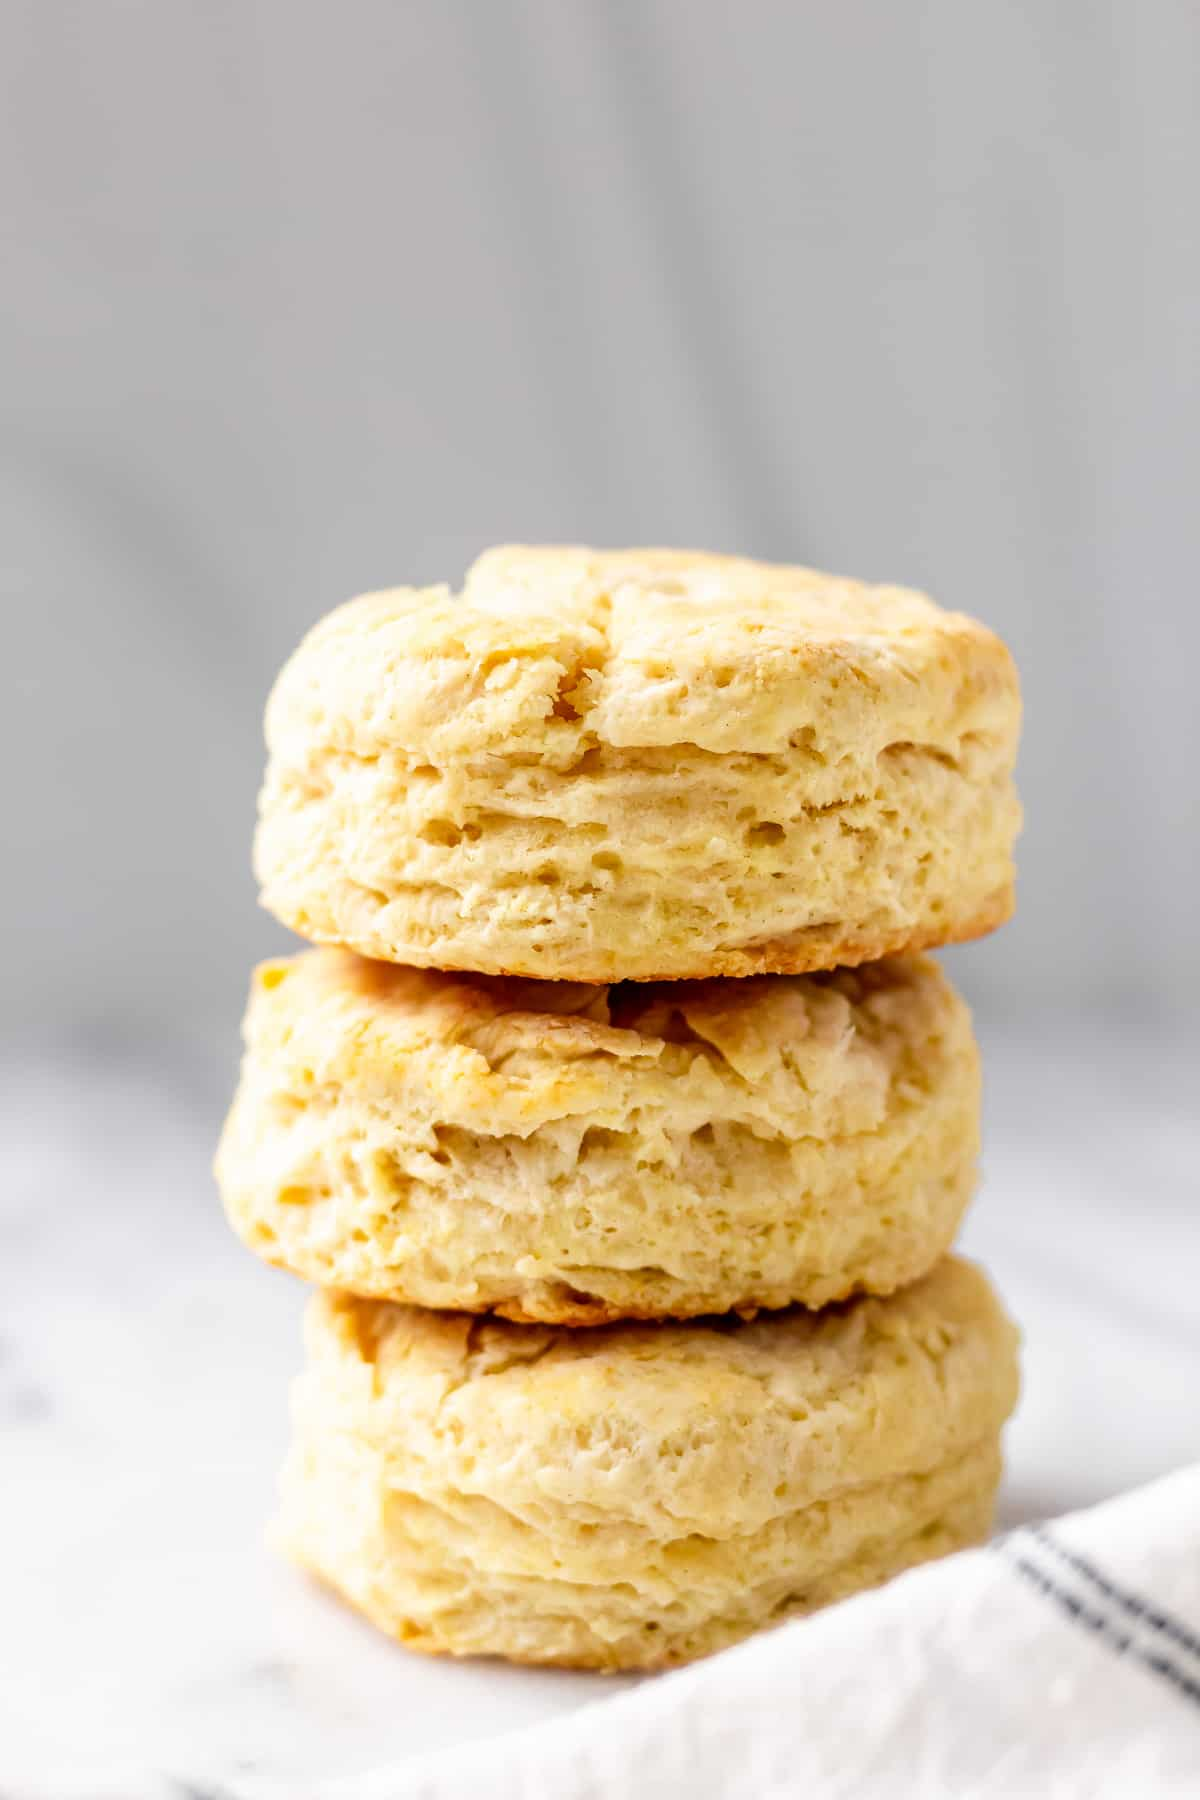 a stack of 3 country biscuits on a gray background